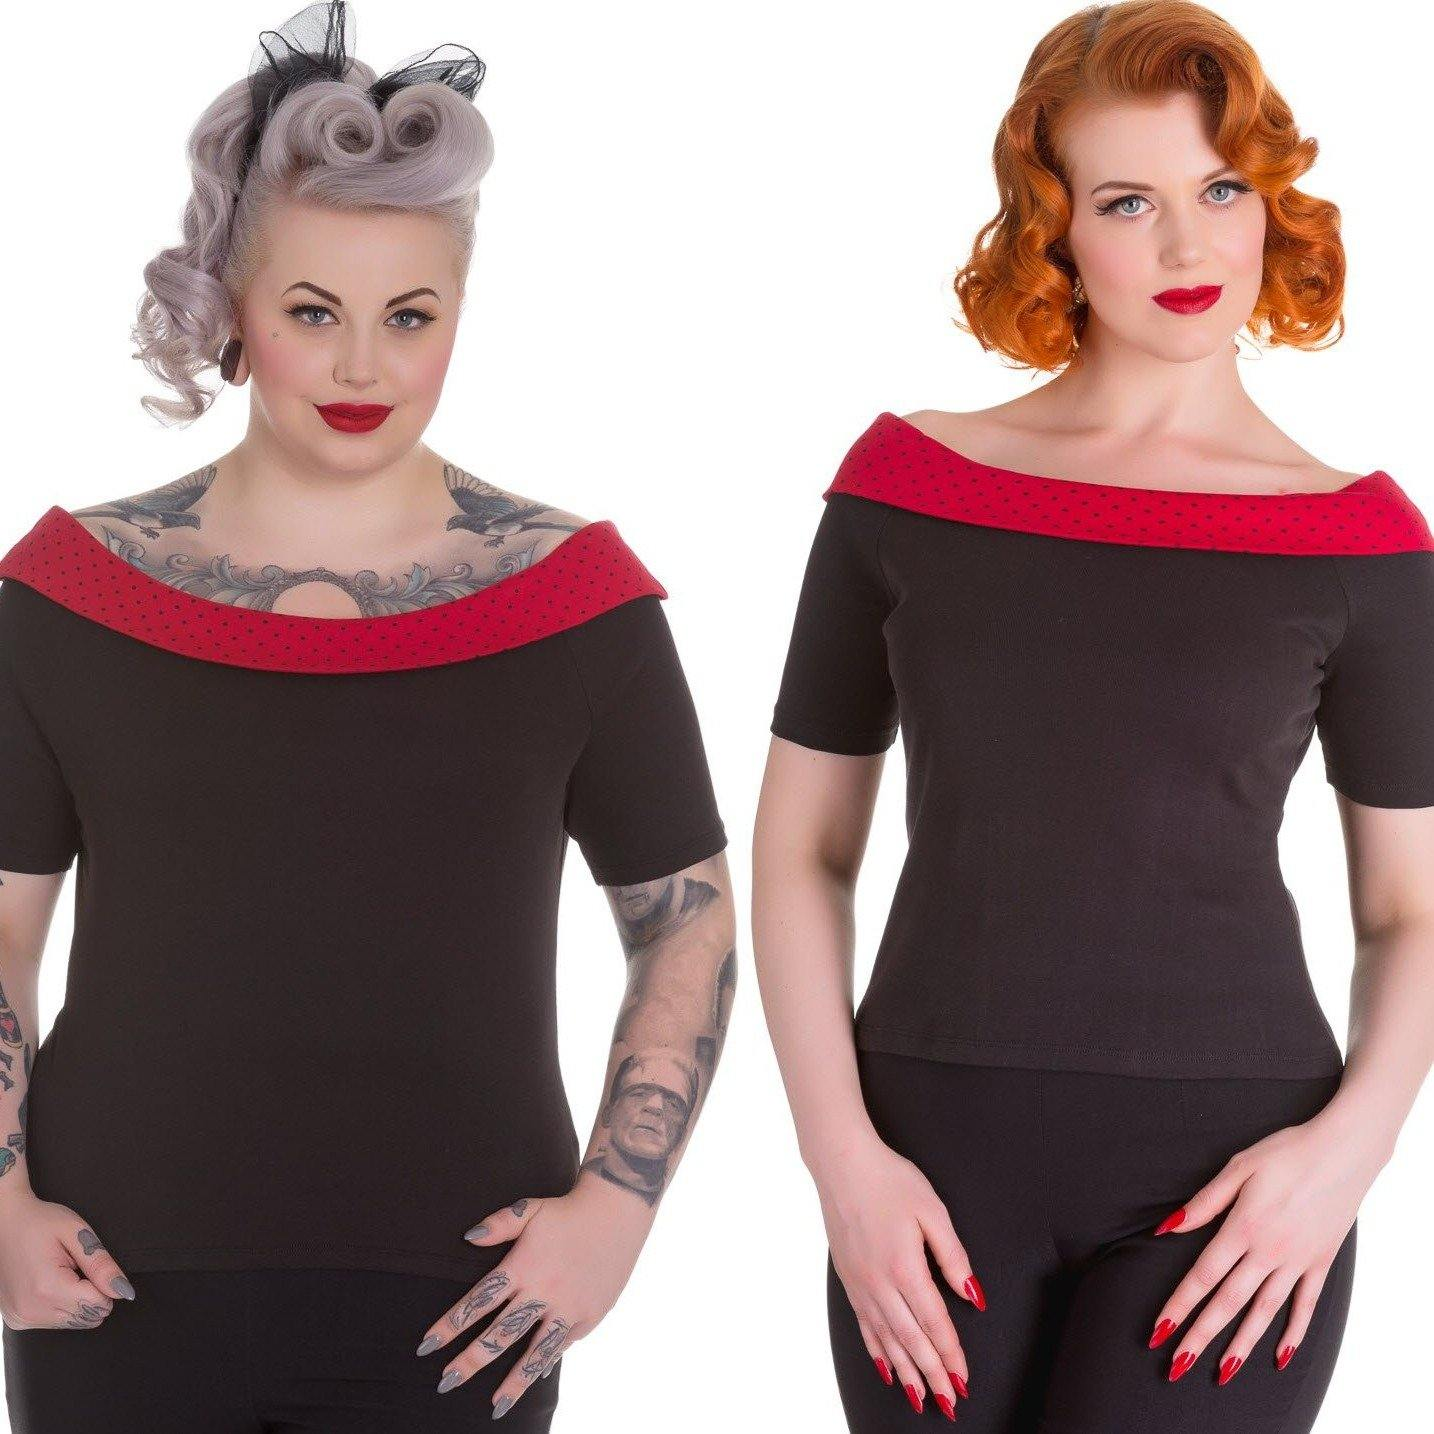 HELL BUNNY CHLOE TOP BLACK AND RED XS to 4XL